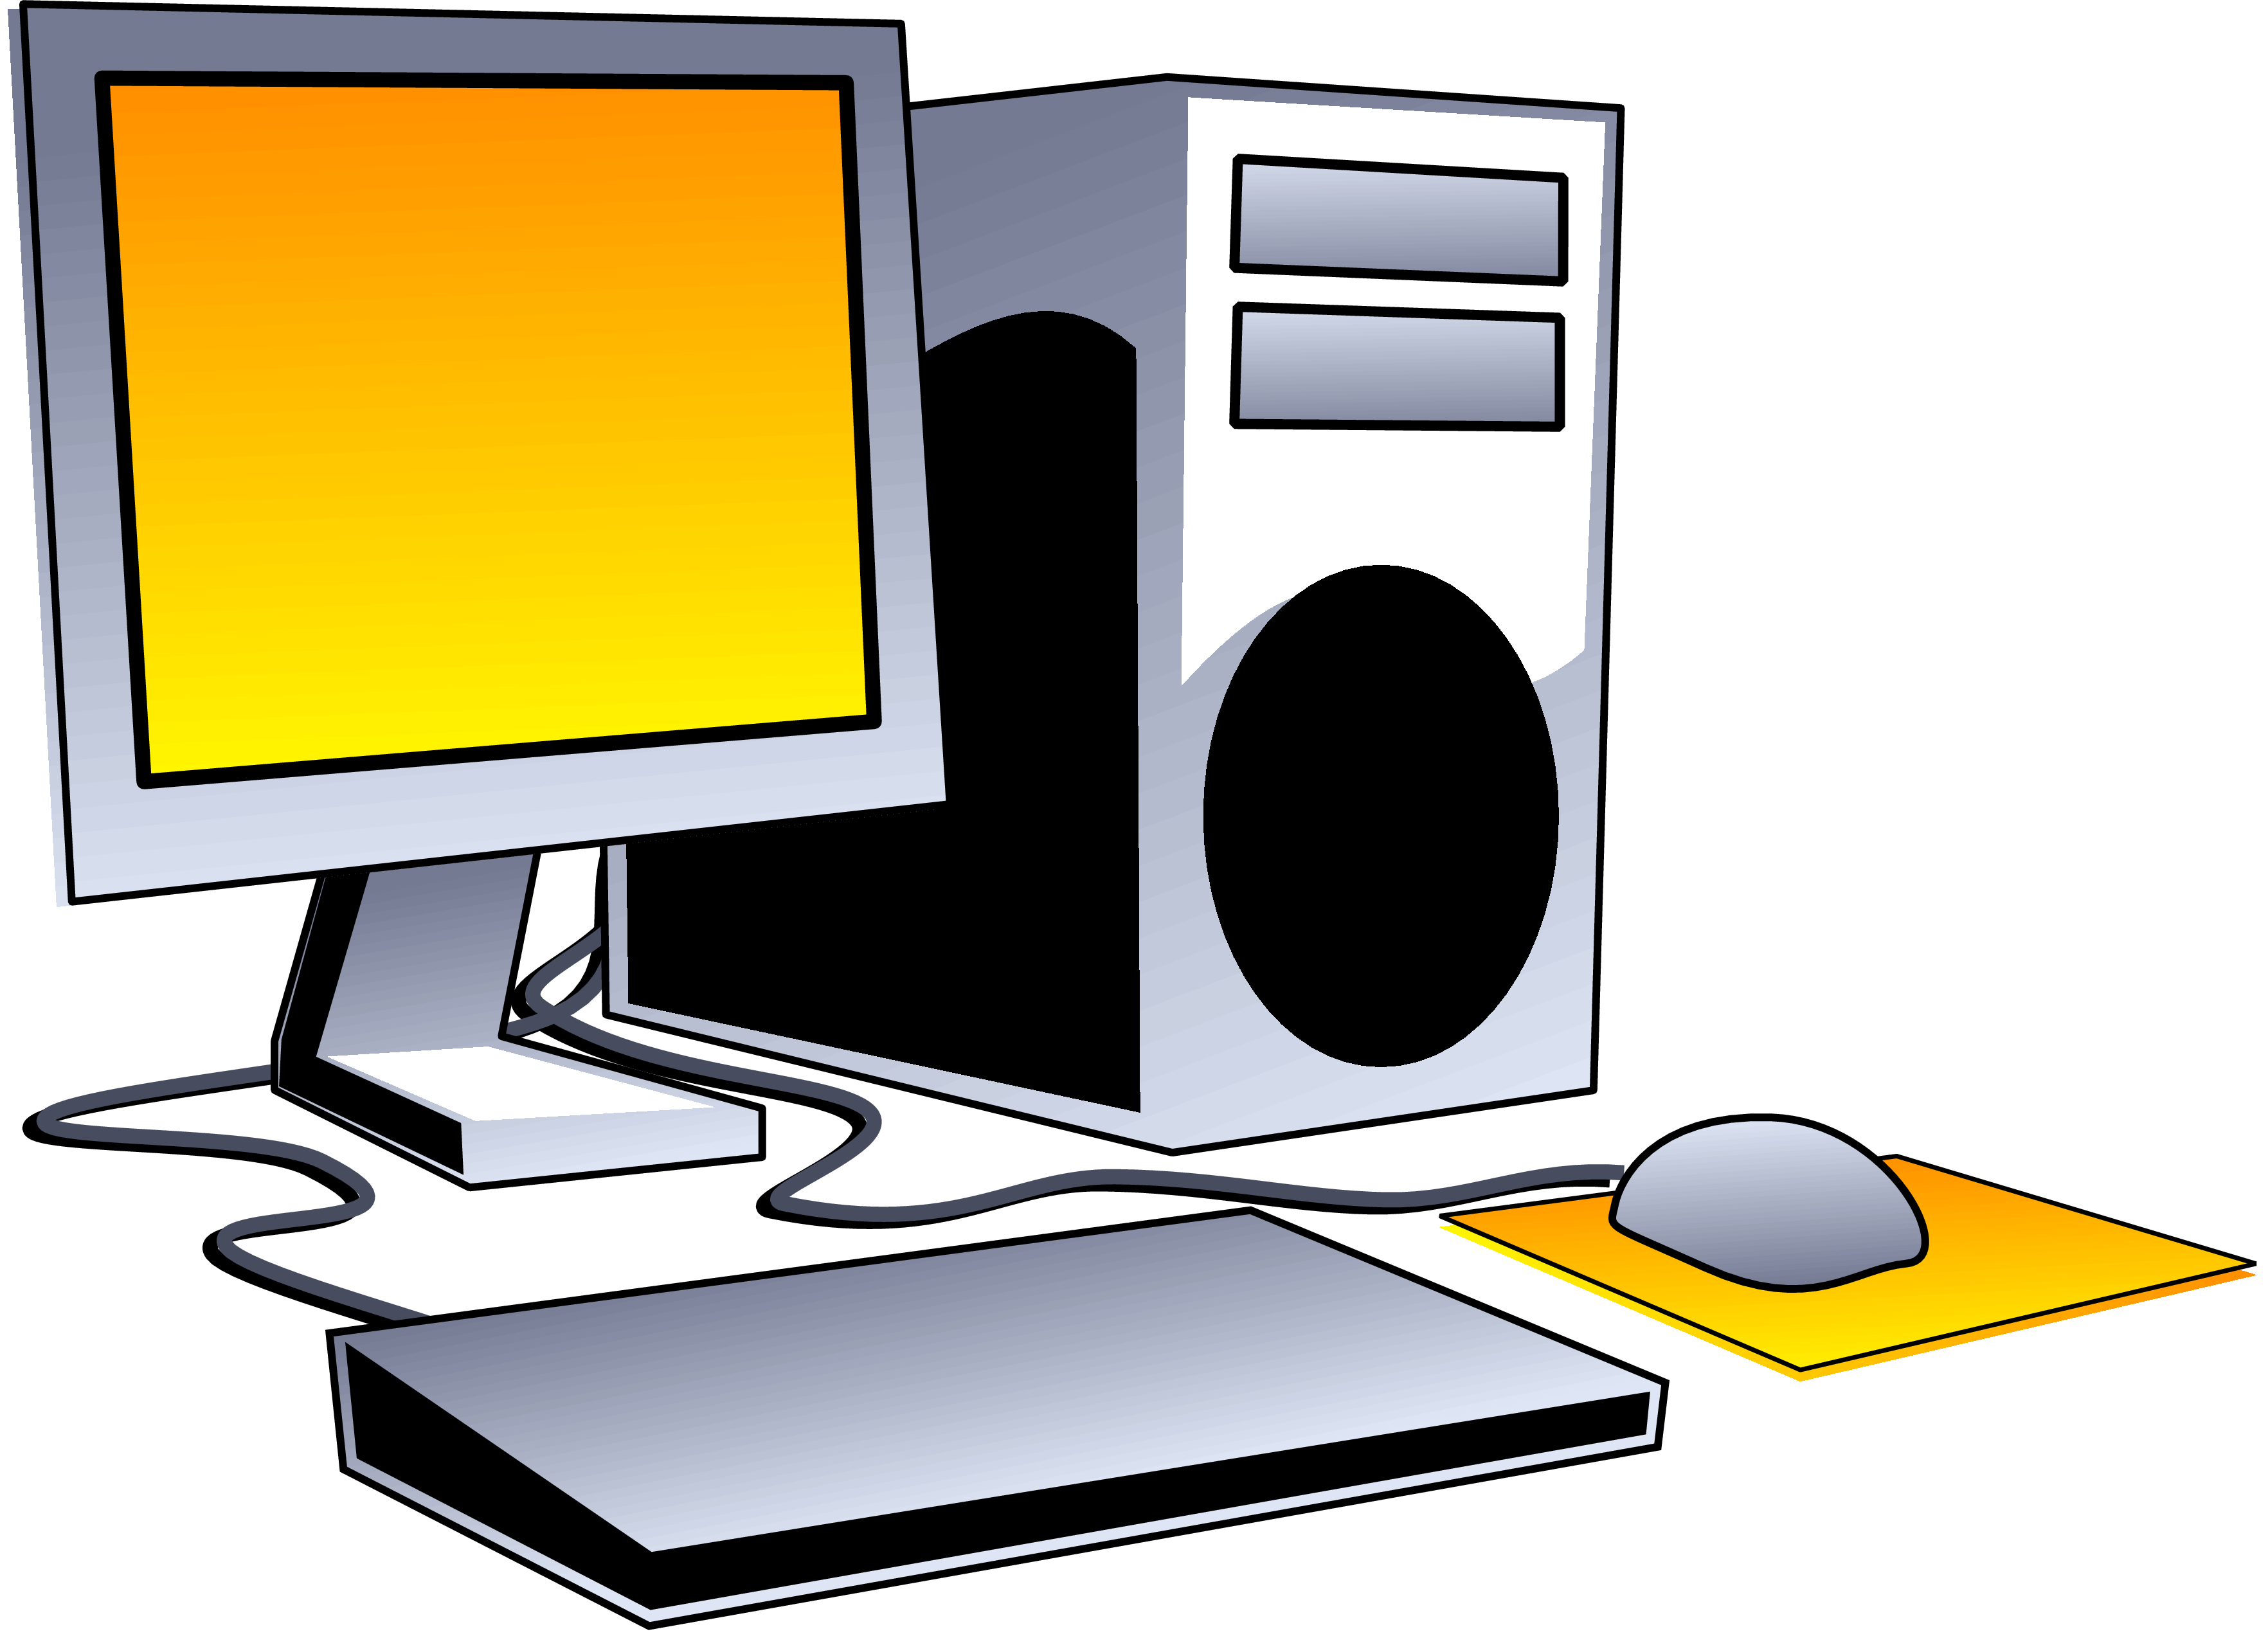 Desktop Computers Clipart-Desktop Computers Clipart-13